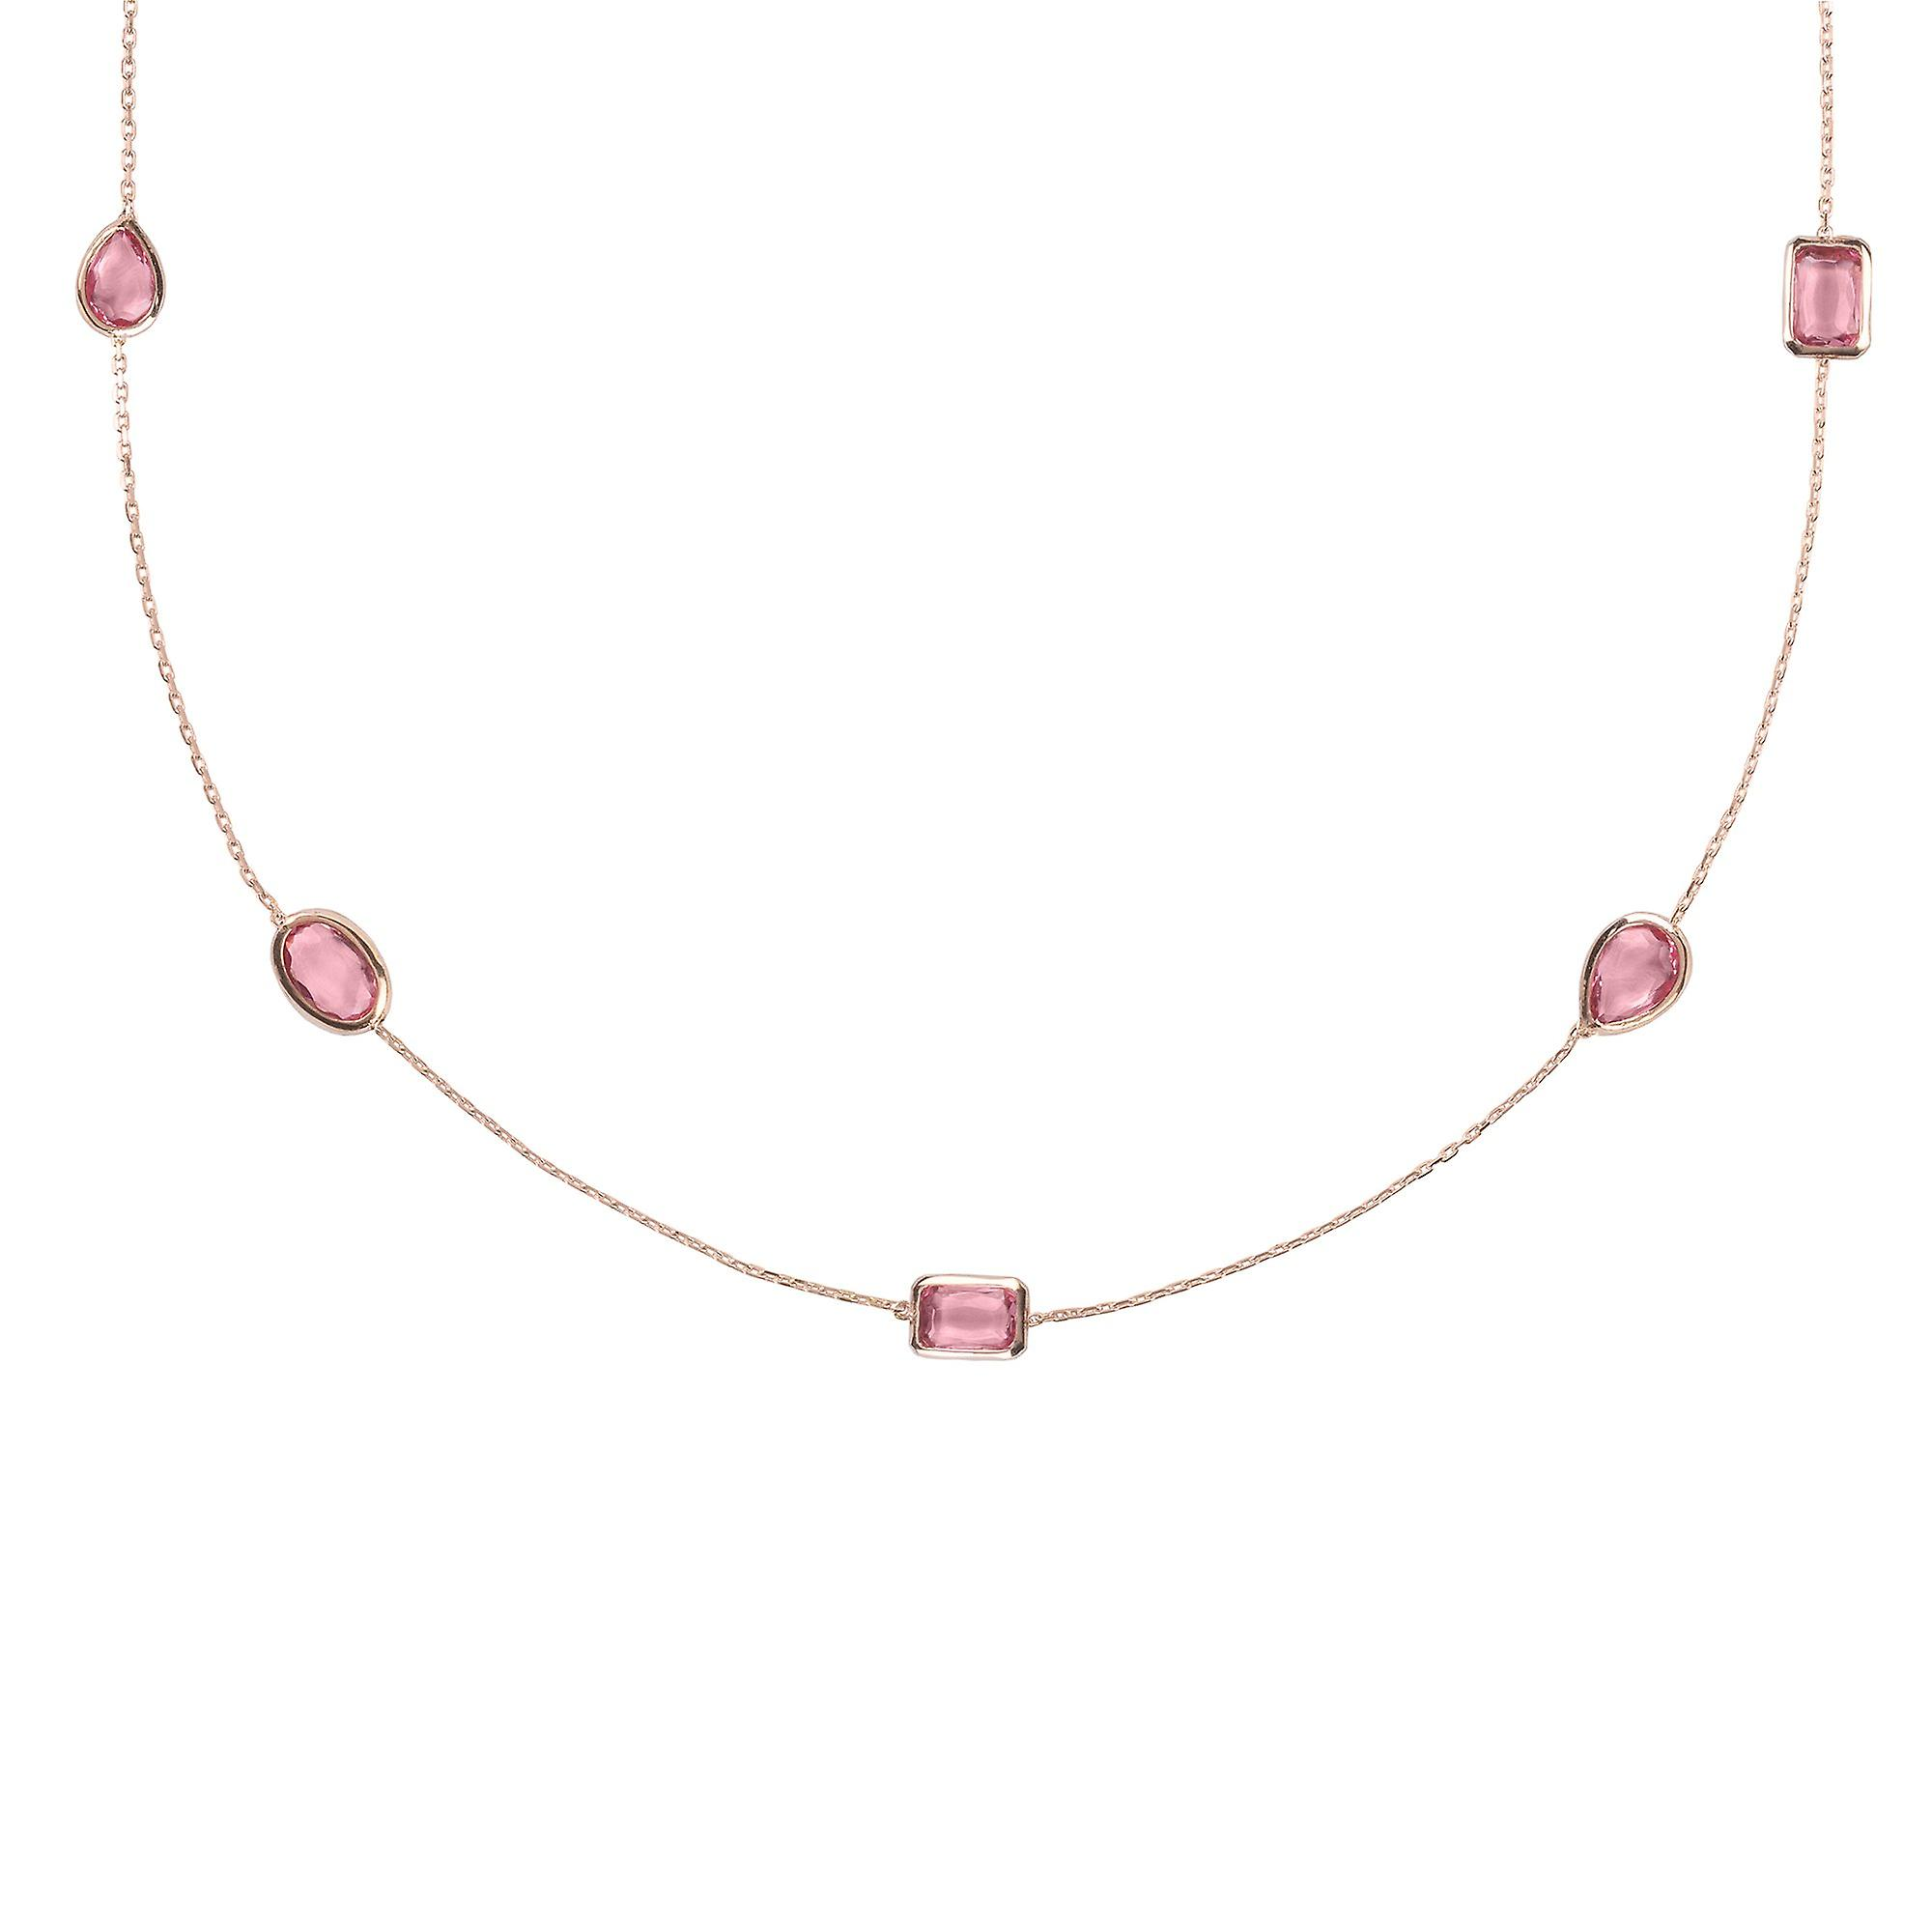 Latelita Long Chain Gemstone Necklace Rose Pink Gold Tourmaline 120cm Delicate